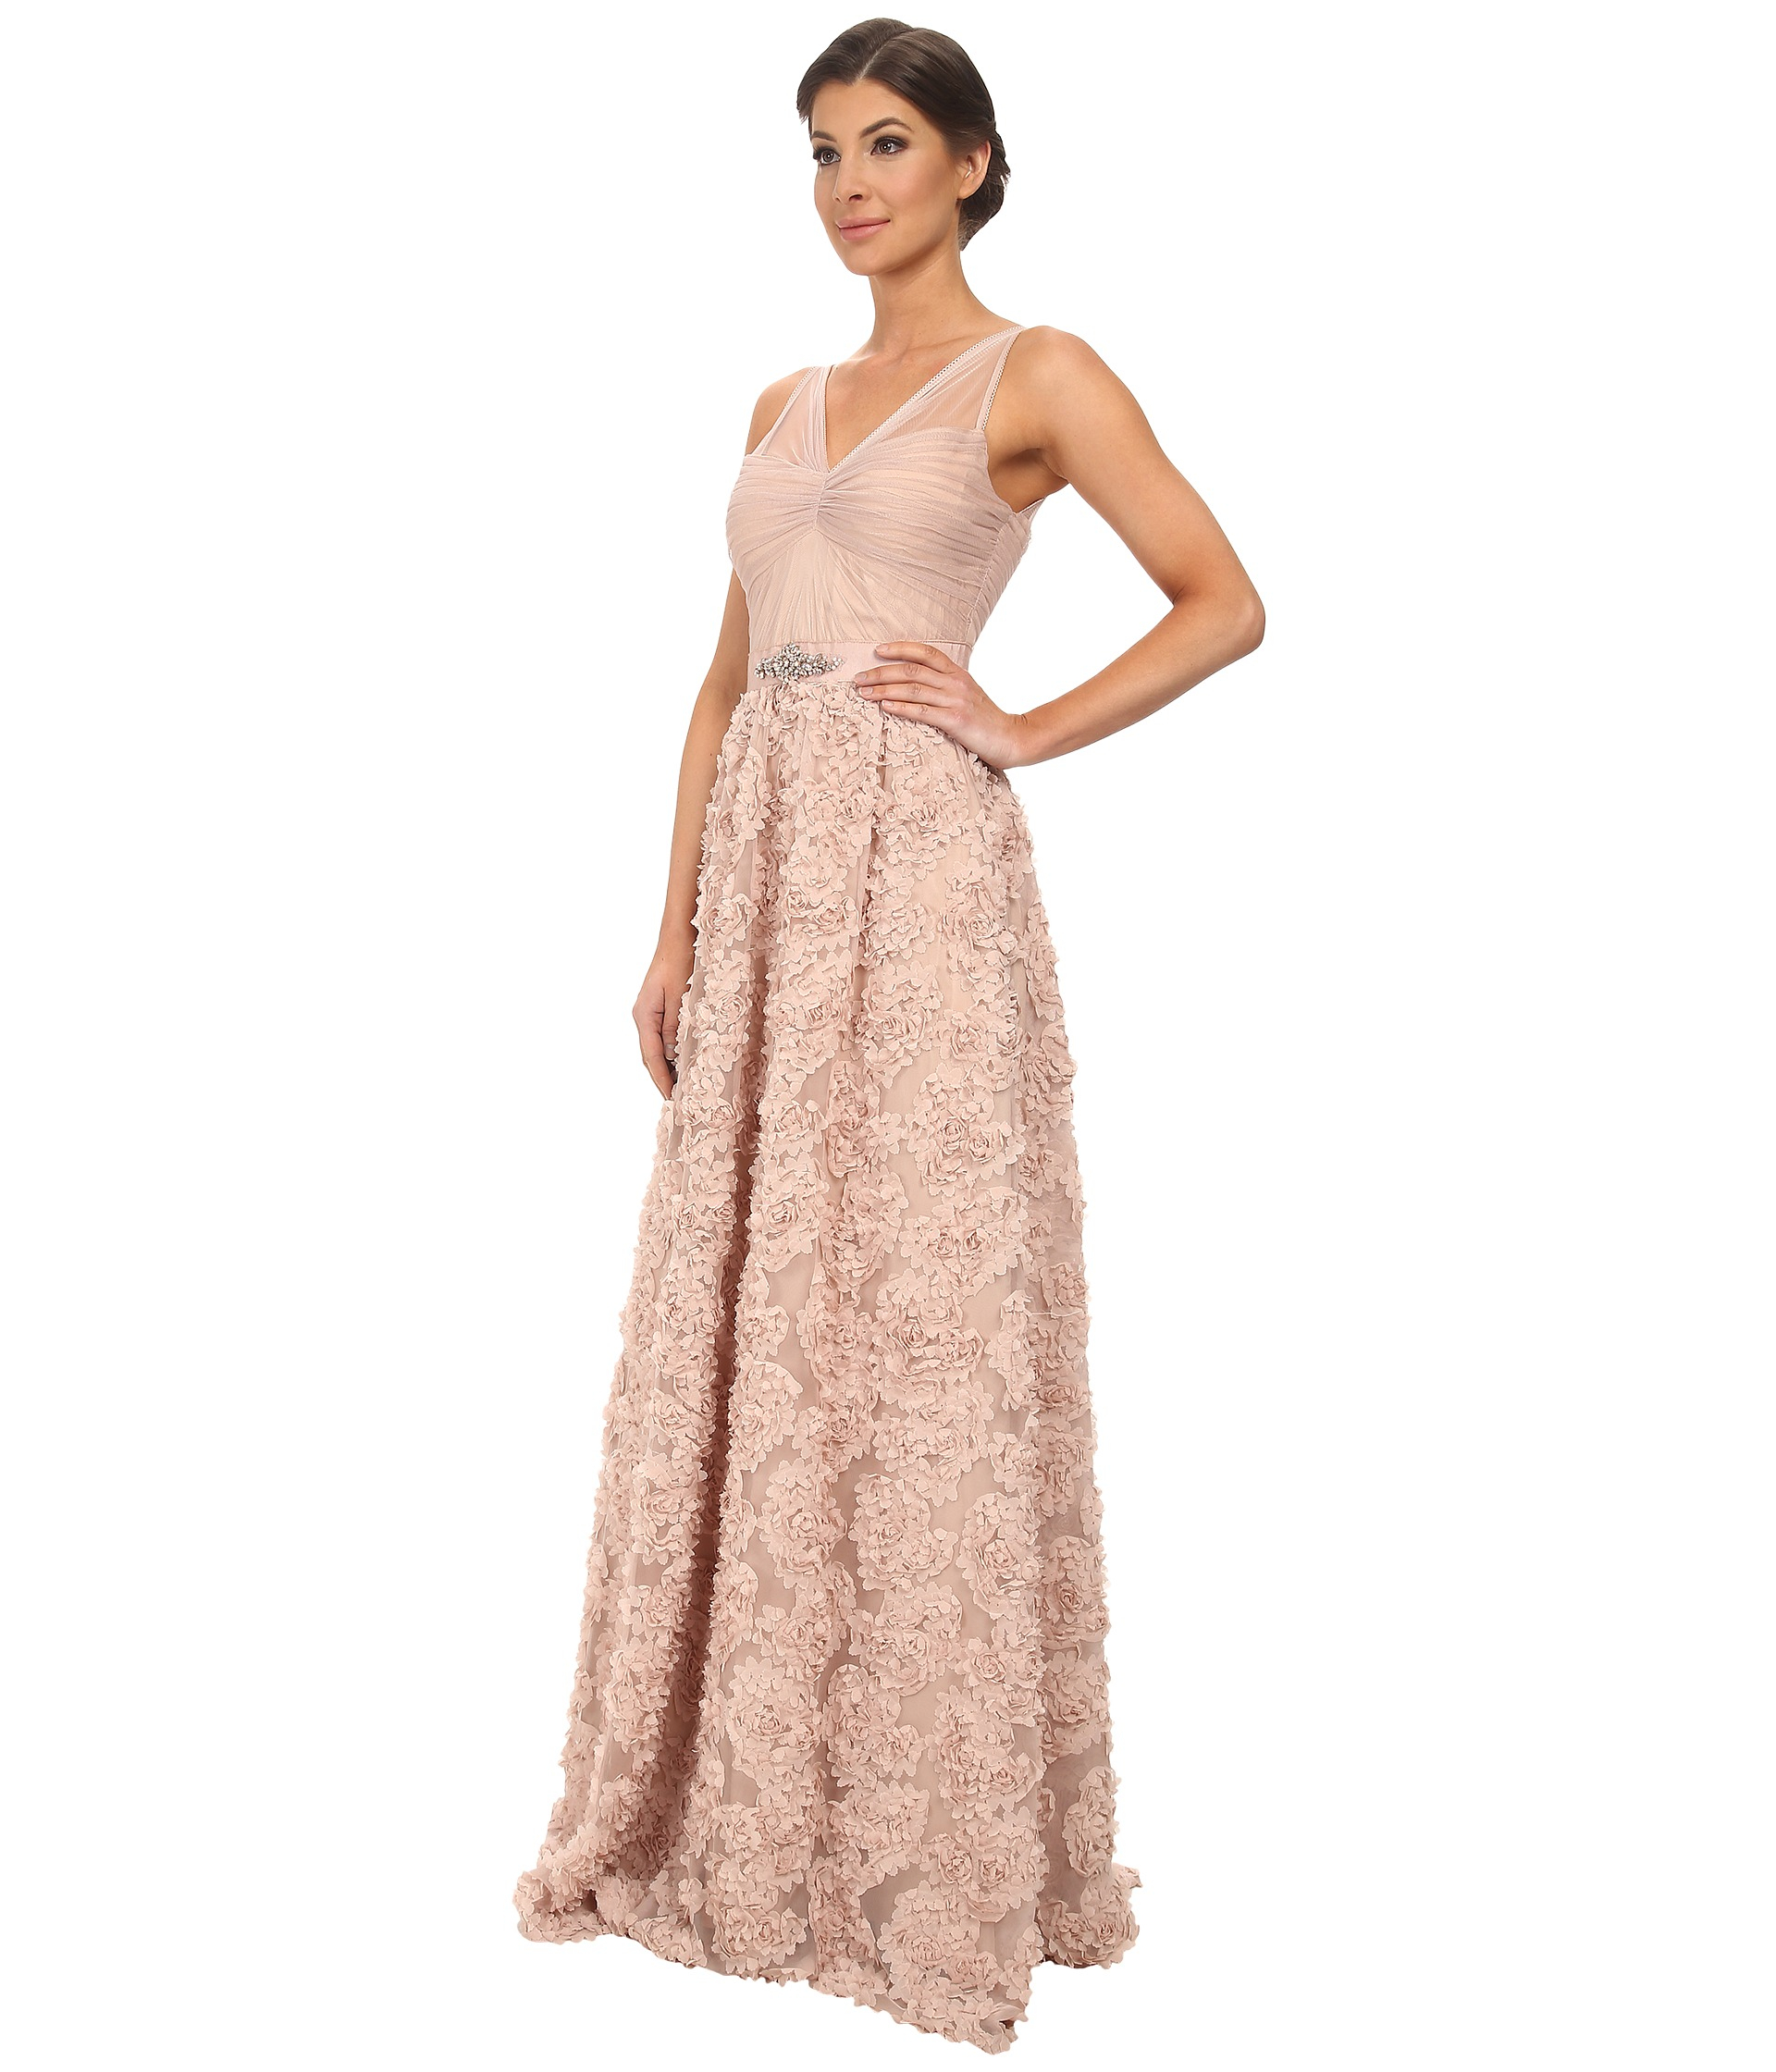 Adrianna Papell Ball Gown Fashion Dresses